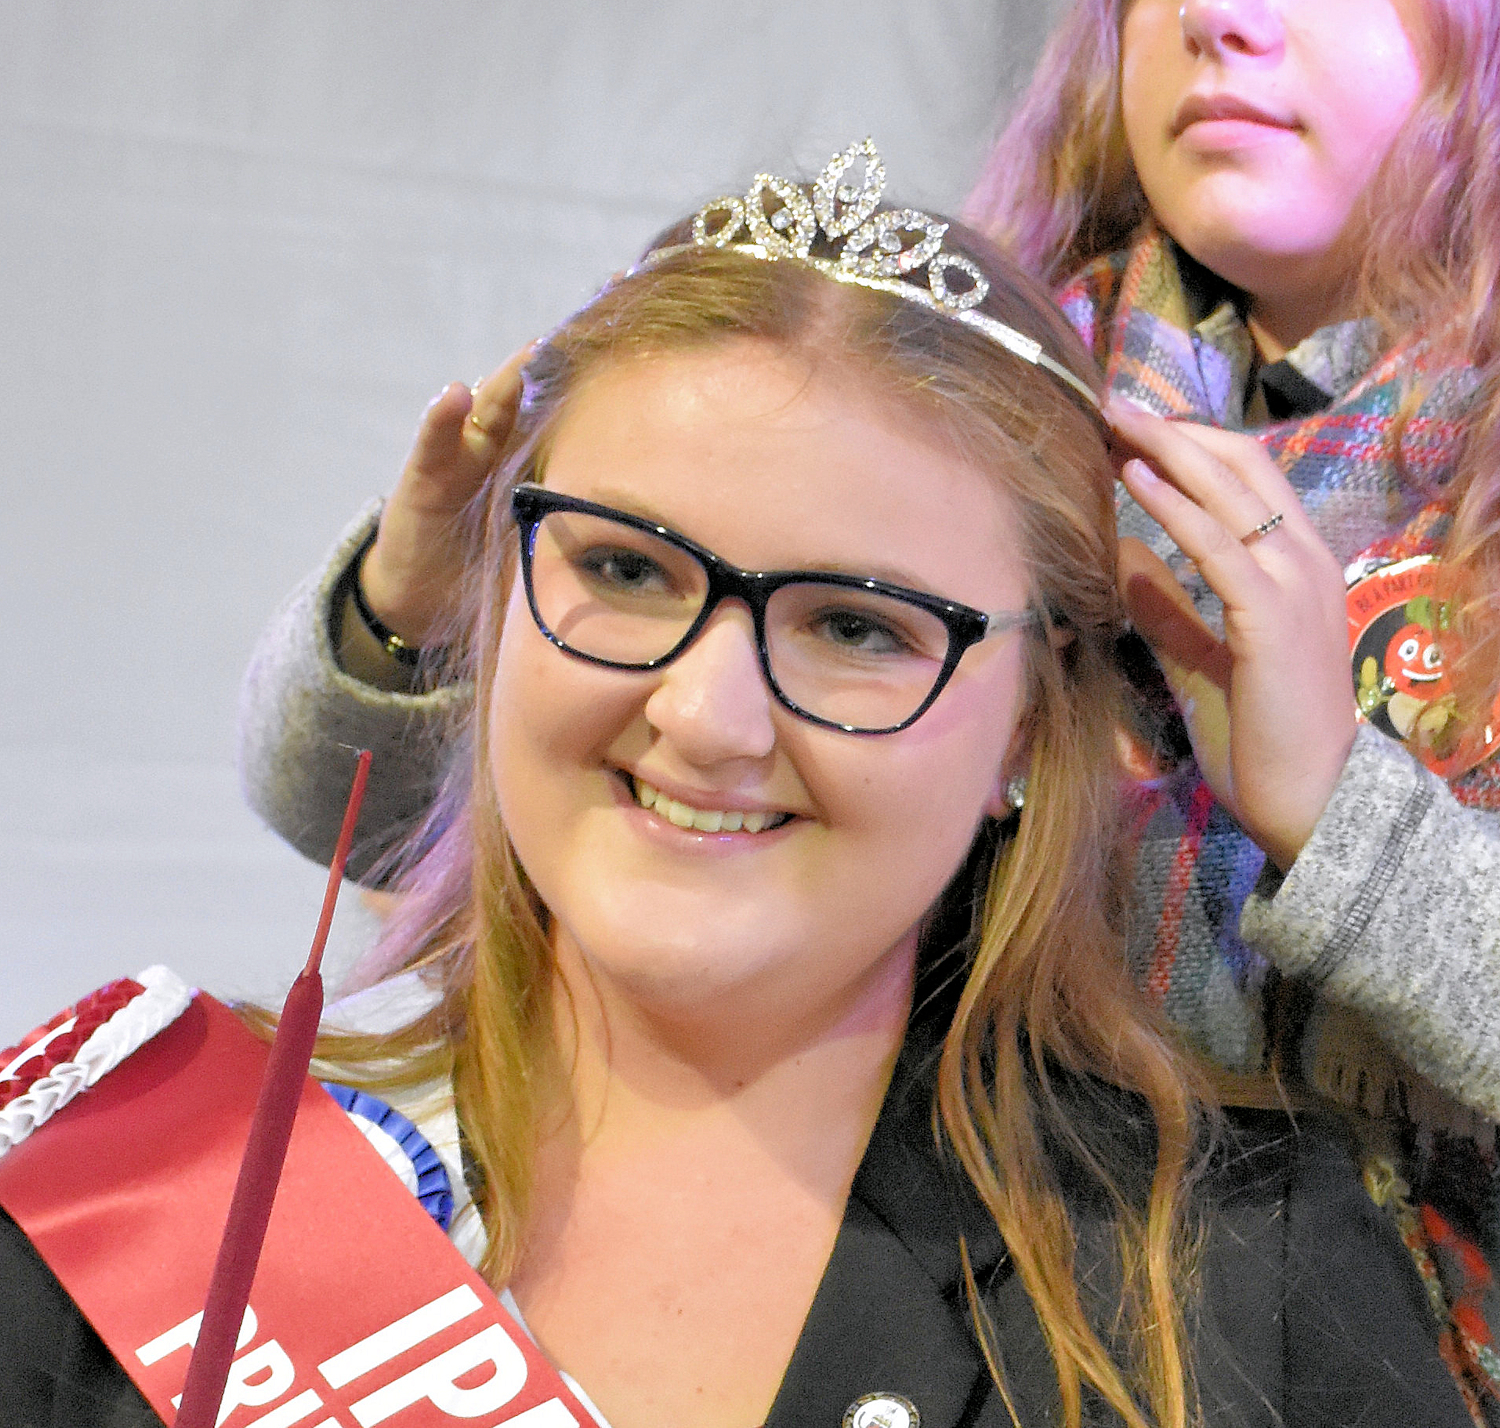 Wellington County's Tate Driscoll is the 2018/19 Princess of the Furrow